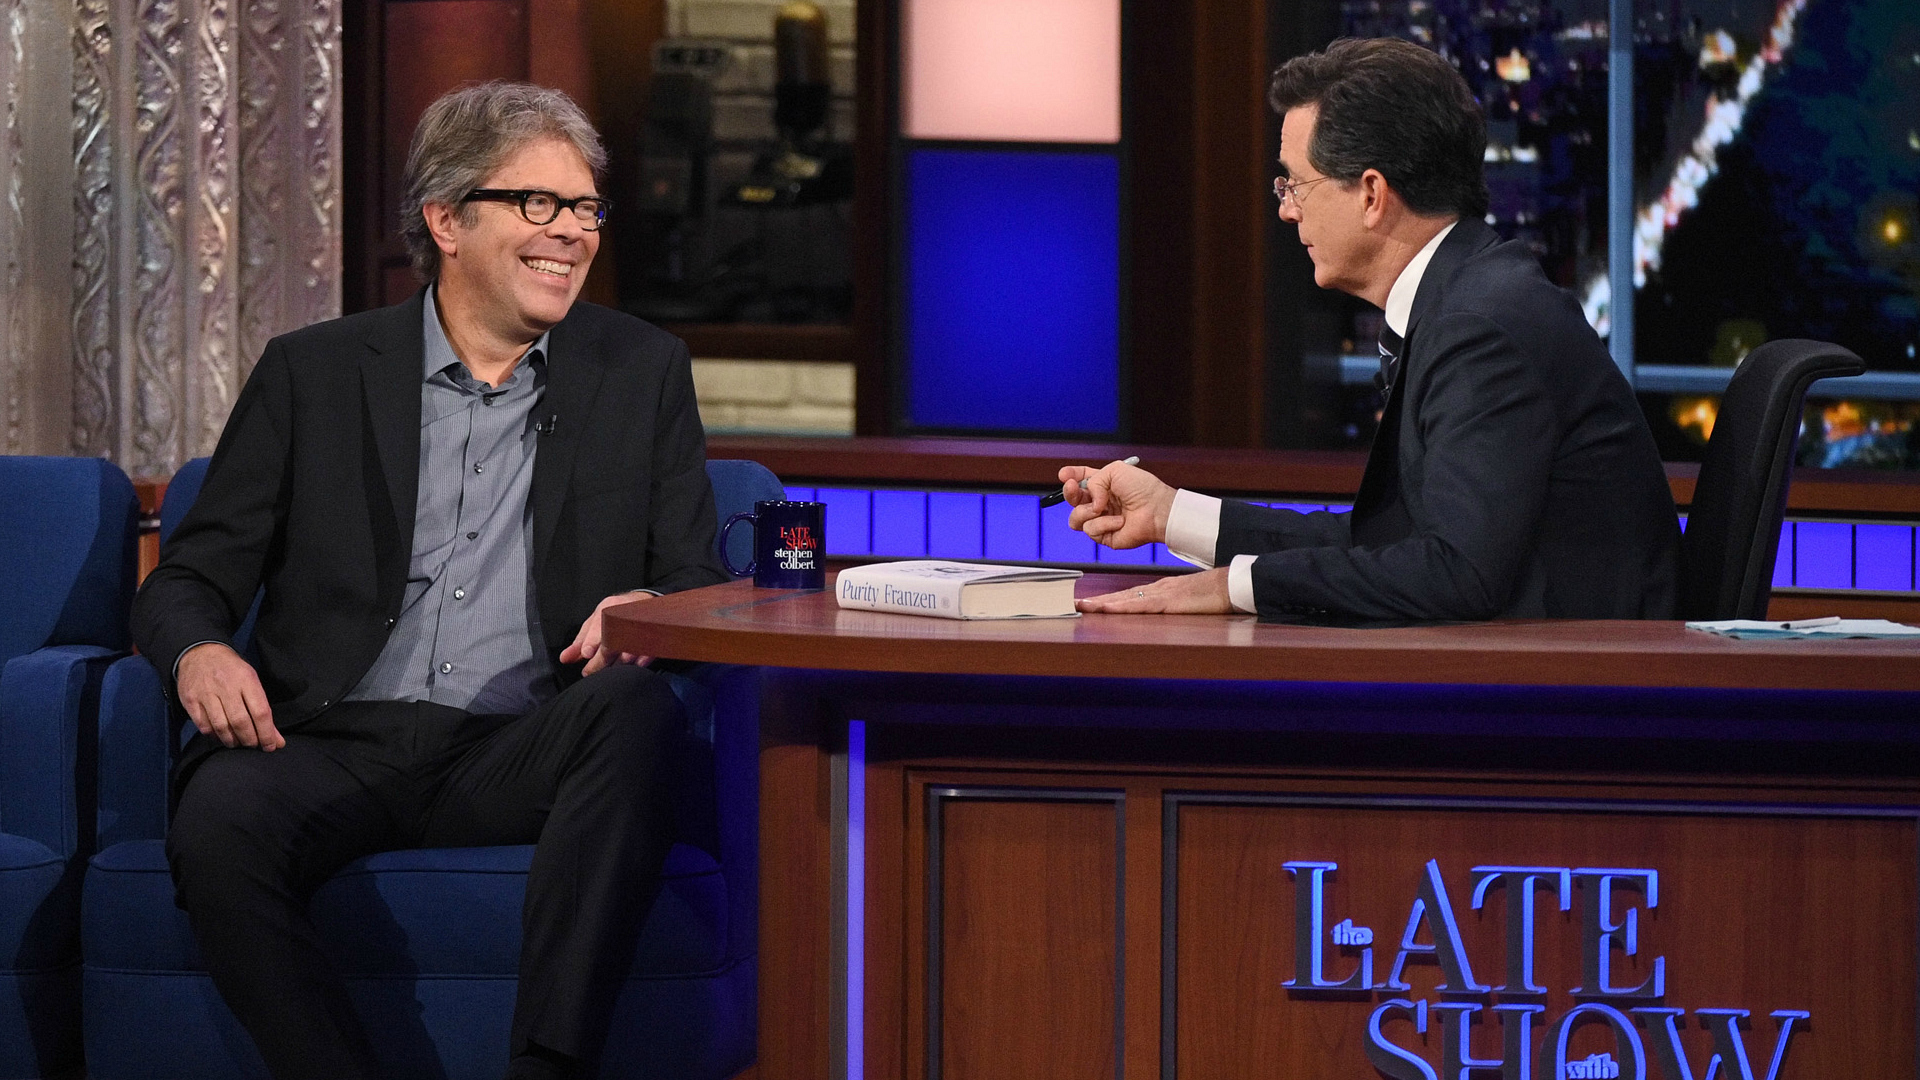 Jonathan Franzen and Stephen Colbert